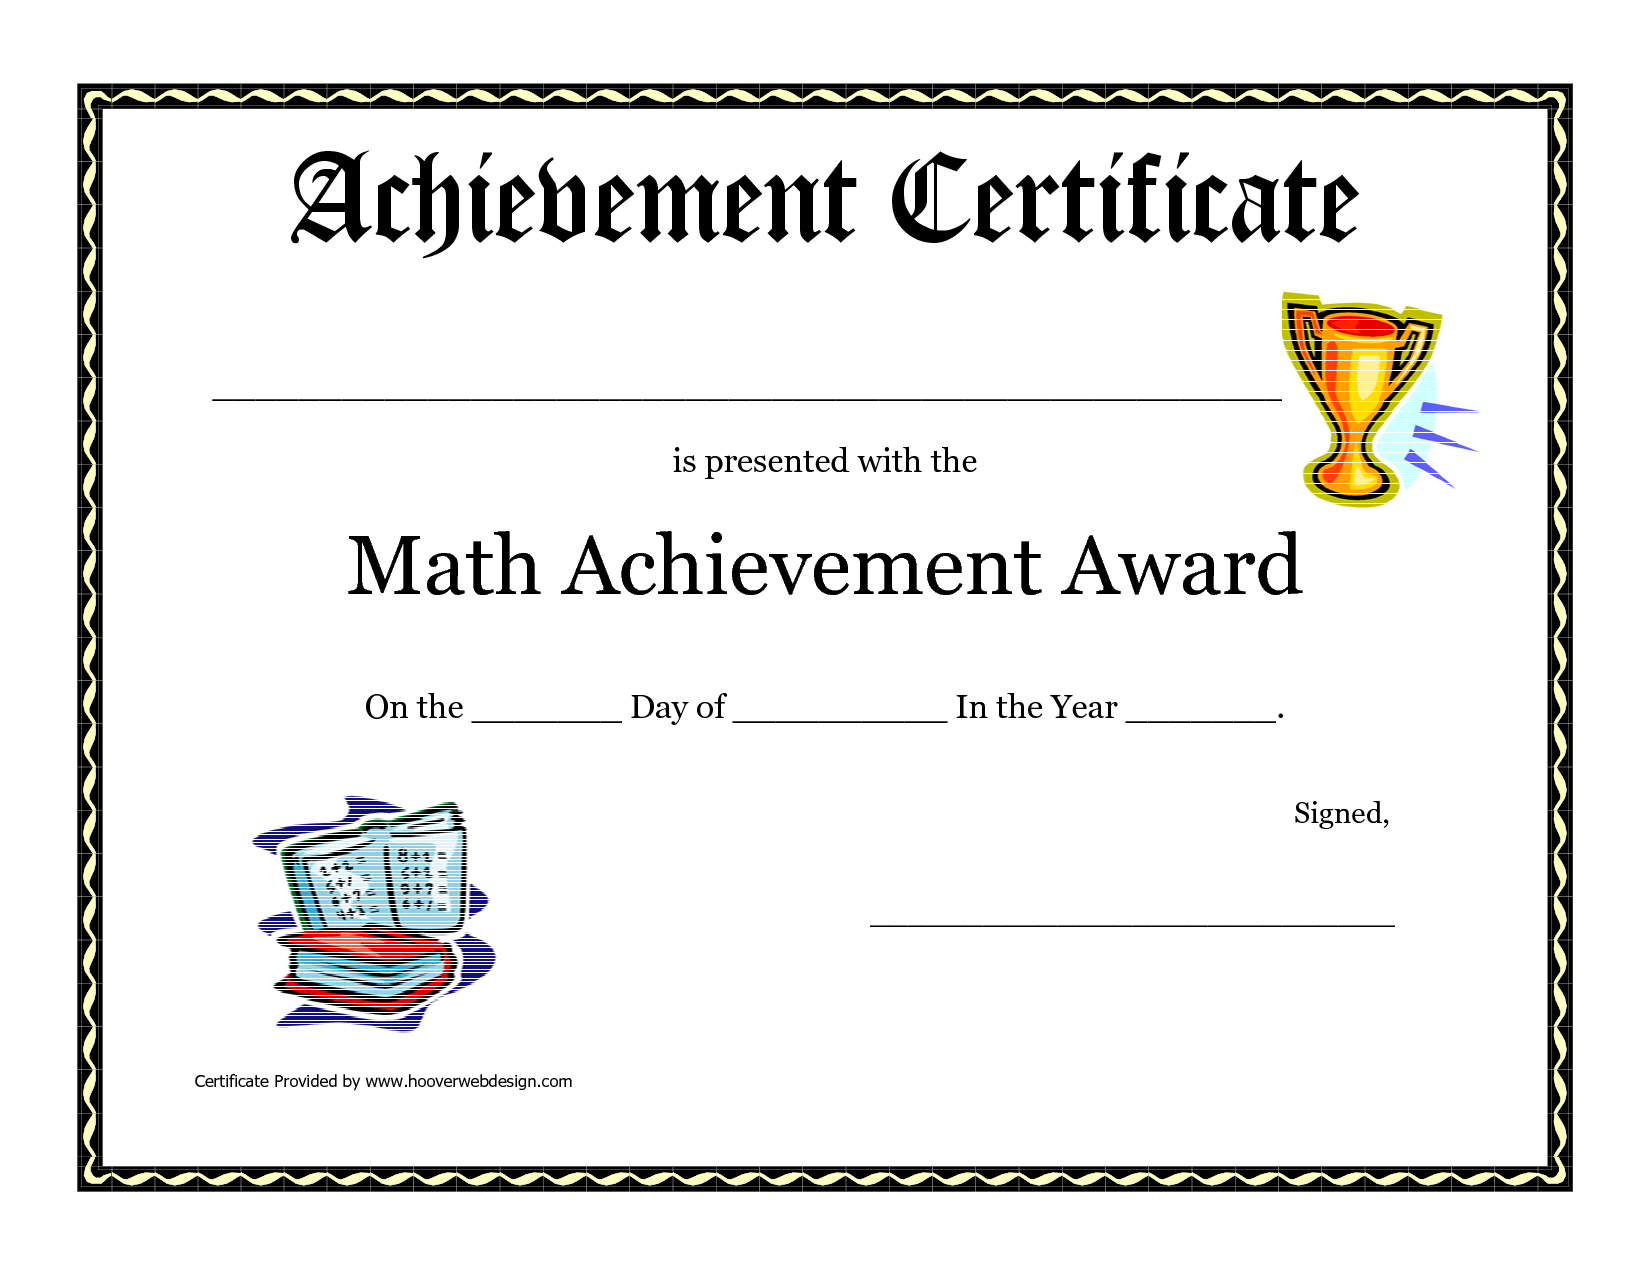 Math Achievement Award Printable Certificate Pdf | Math Activites - Free Printable Award Certificates For Elementary Students